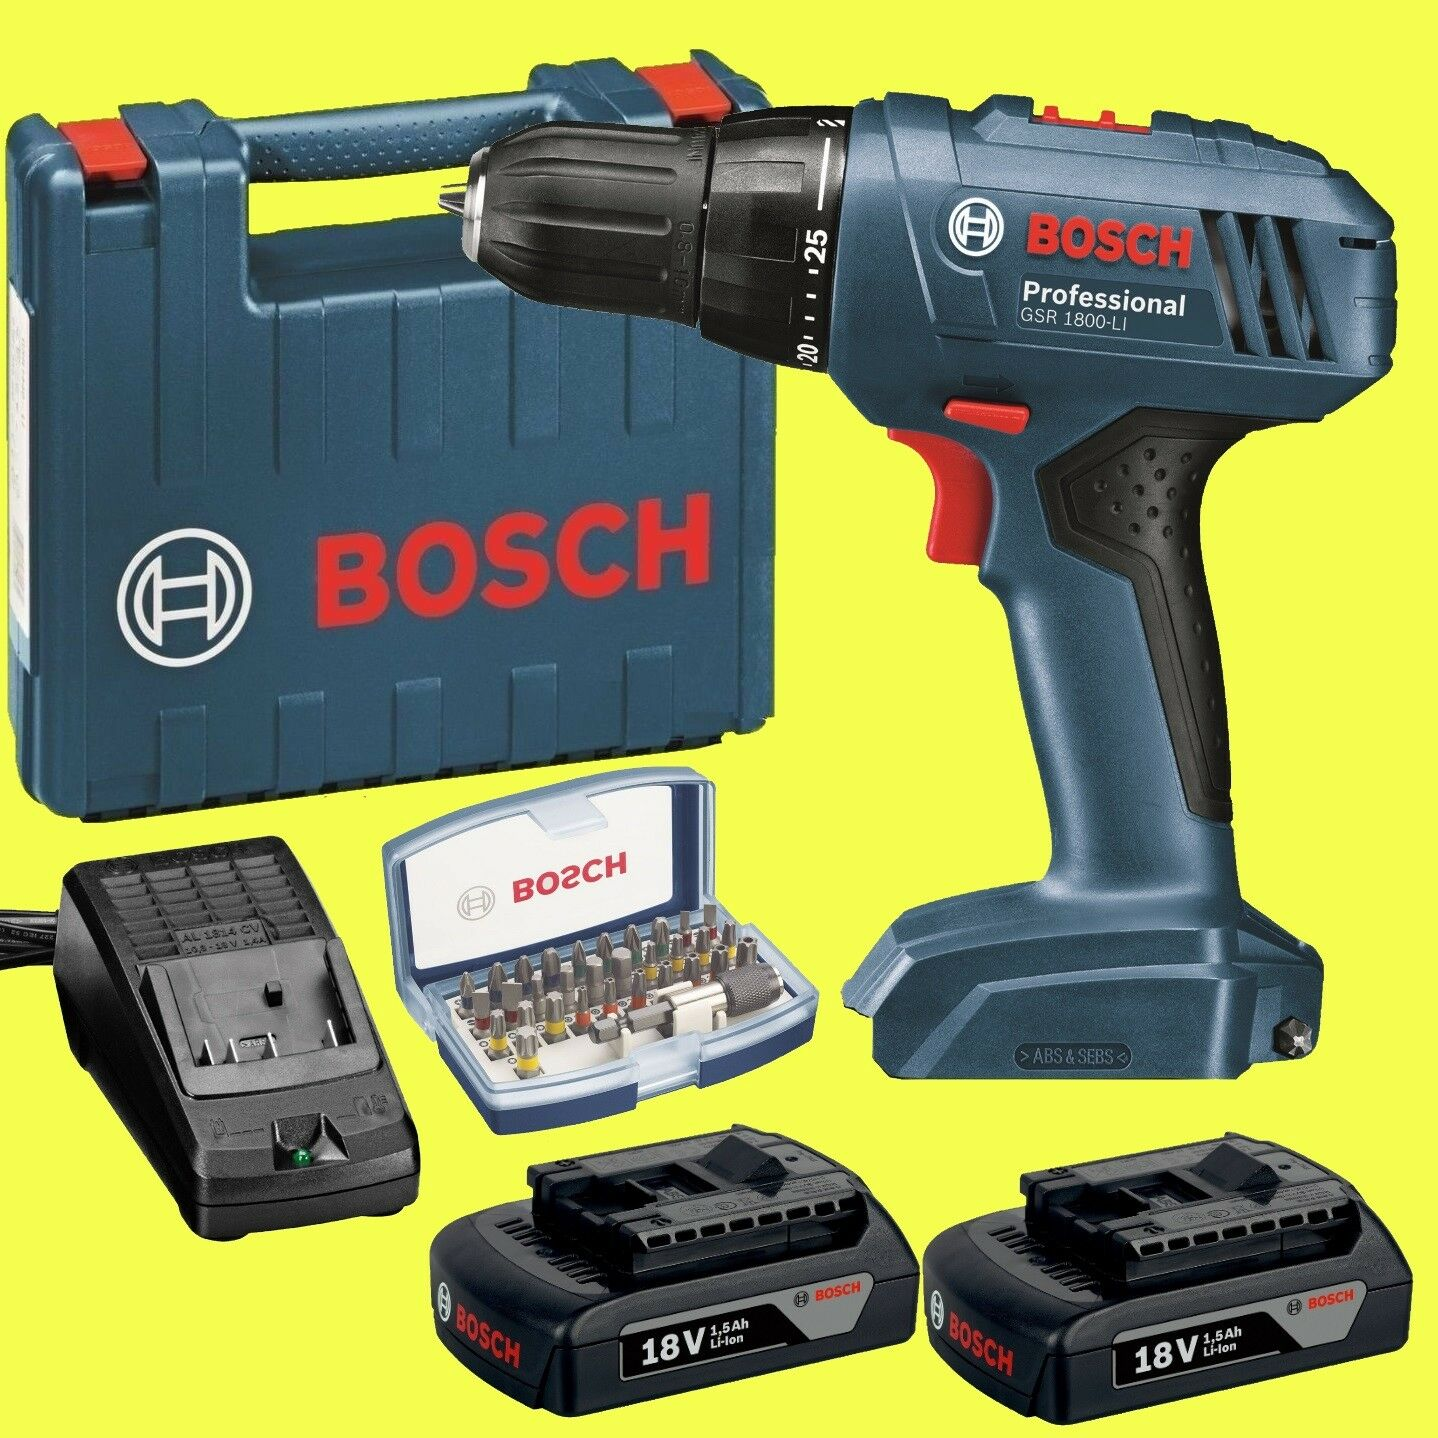 bosch akku schrauber gsr 1800 li 18 volt akkuschrauber bit set 32 tlg eur 126 99 picclick at. Black Bedroom Furniture Sets. Home Design Ideas